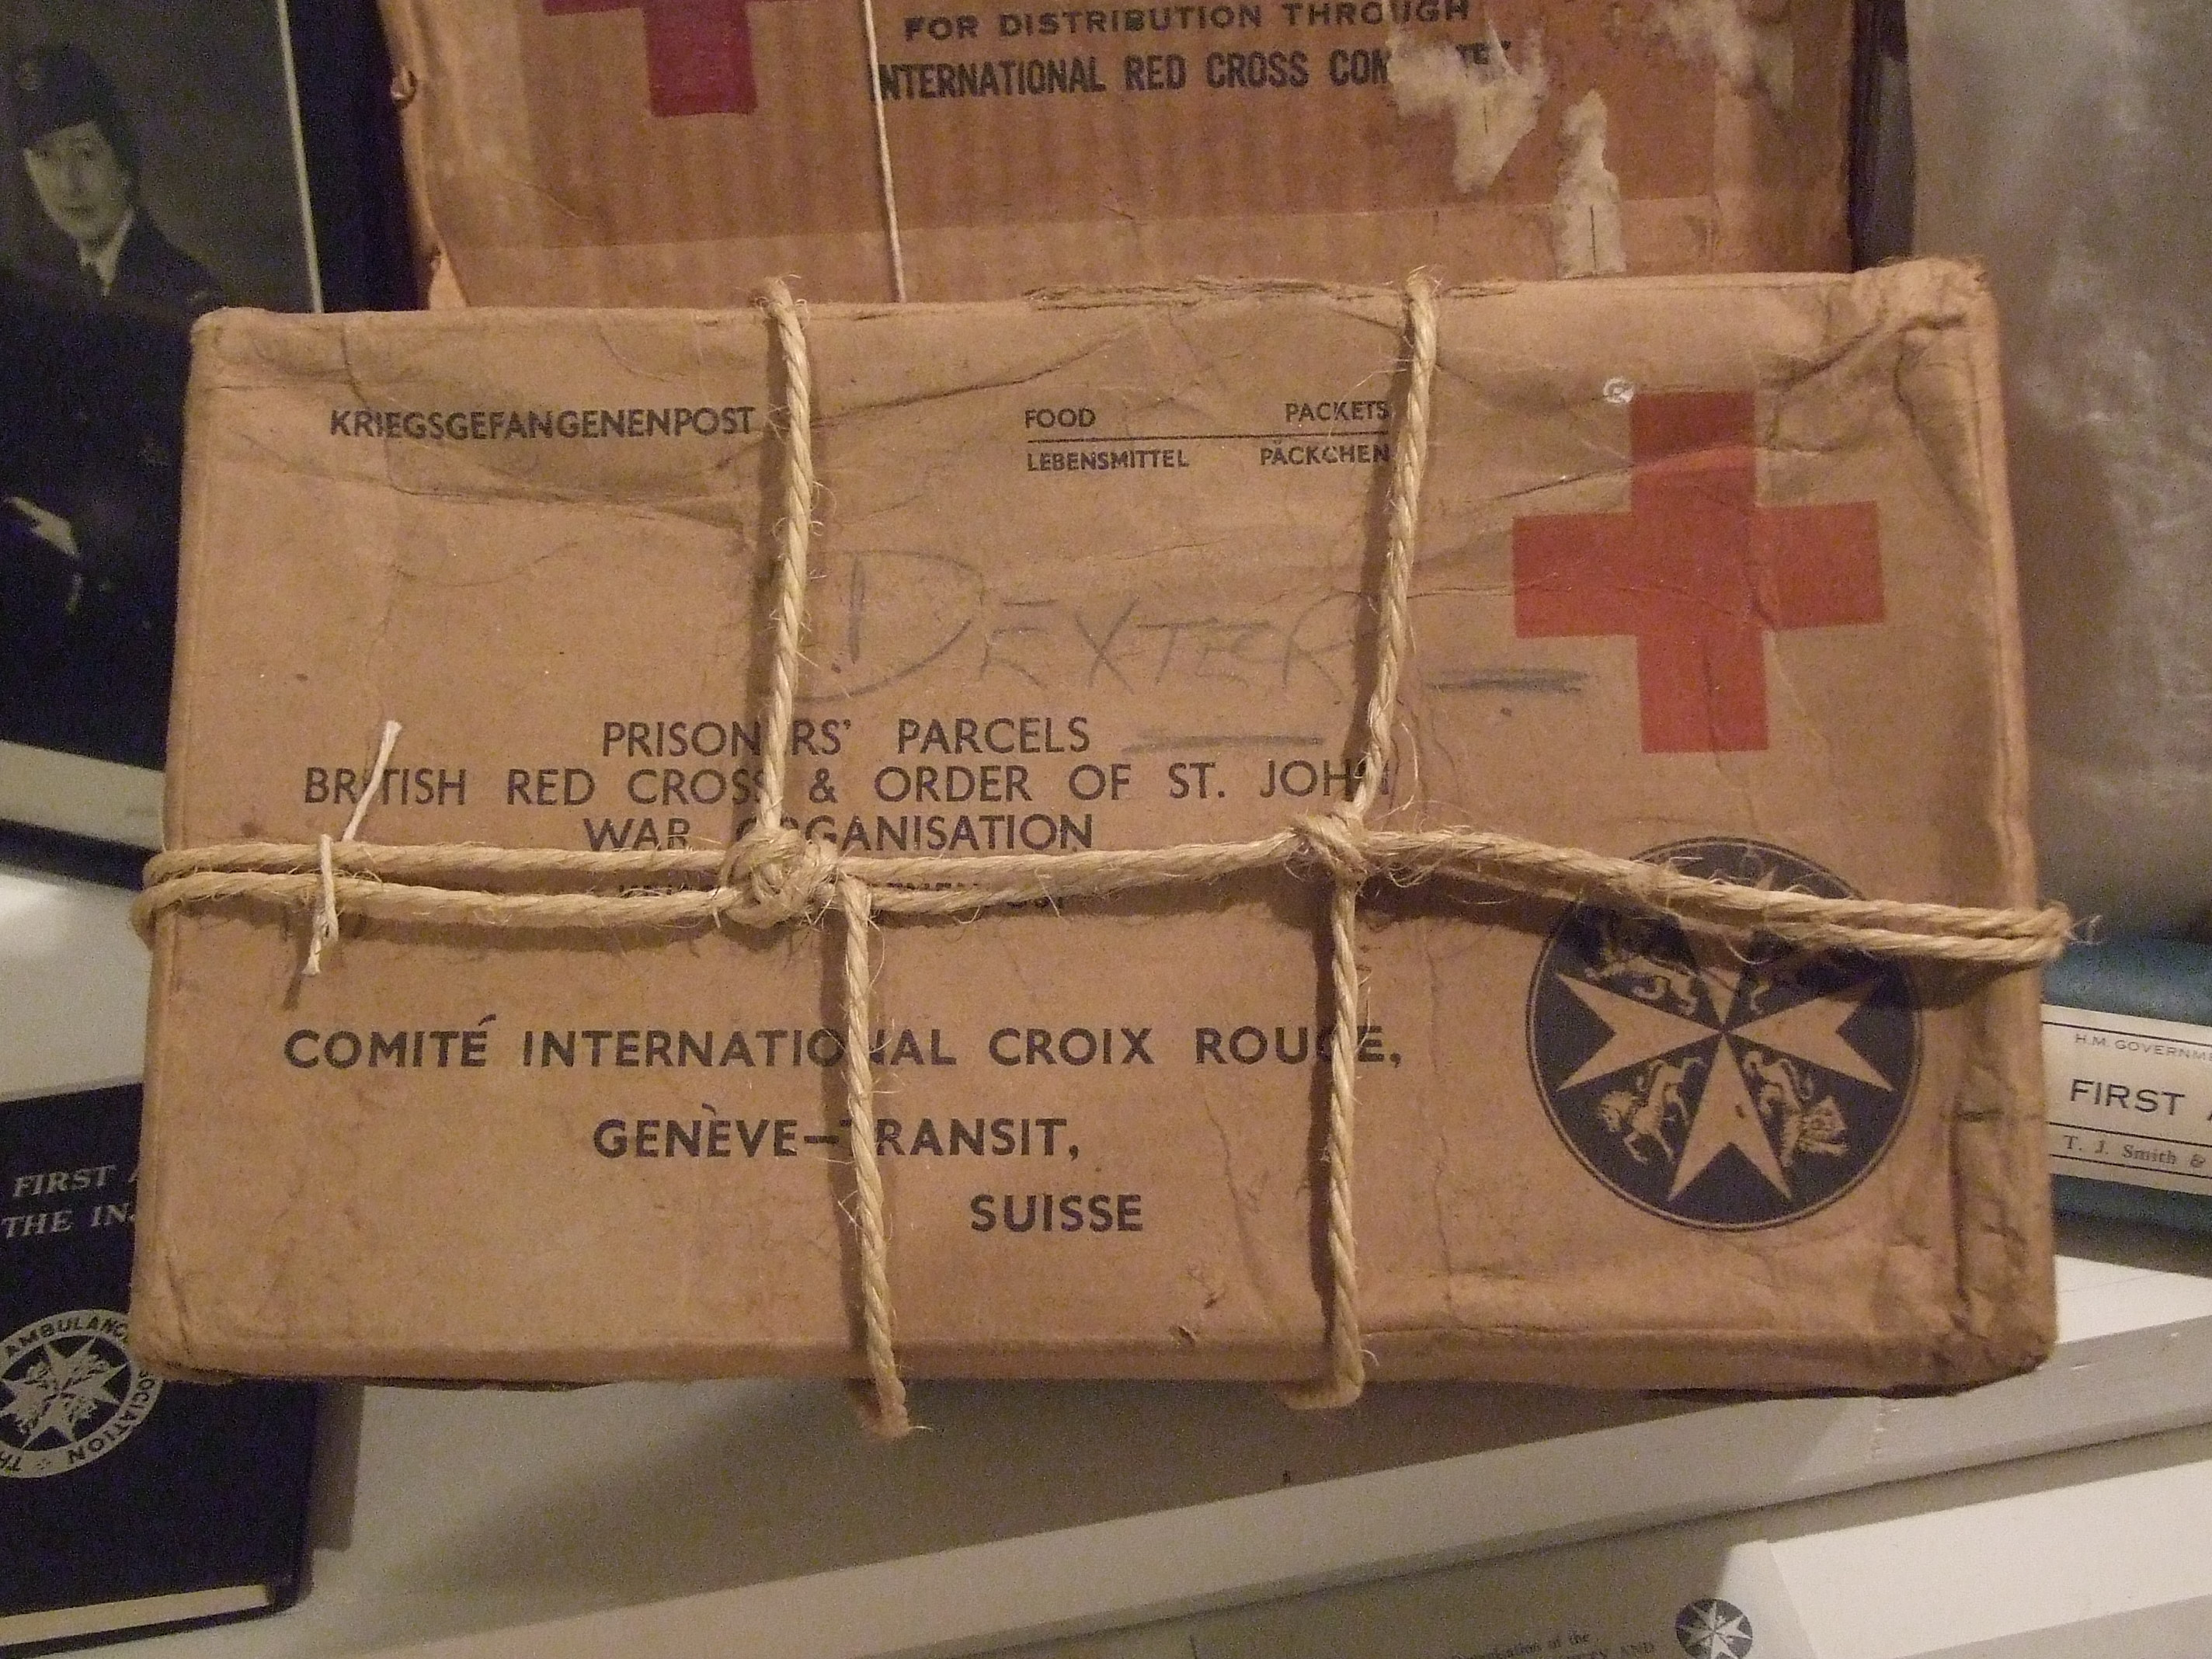 Red Cross parcel